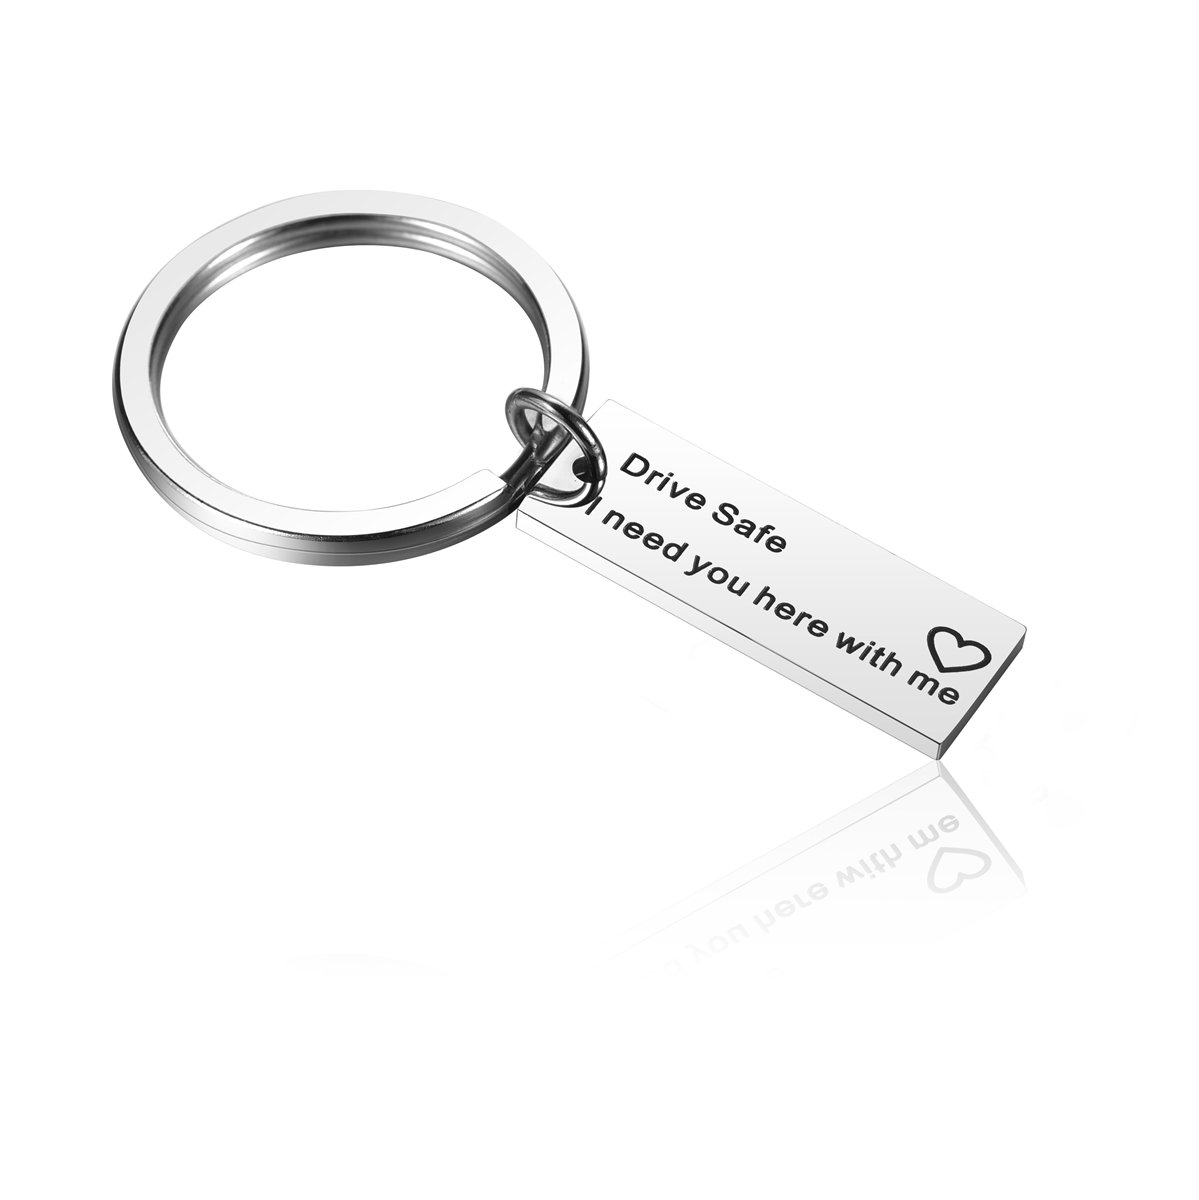 Alxeani Drive Safe Keychain for Trucker, Dad, Husband, Fiance, Boyfriend, Sweet 16 Gift, Drive Safe I Need You Here With Me Keychain